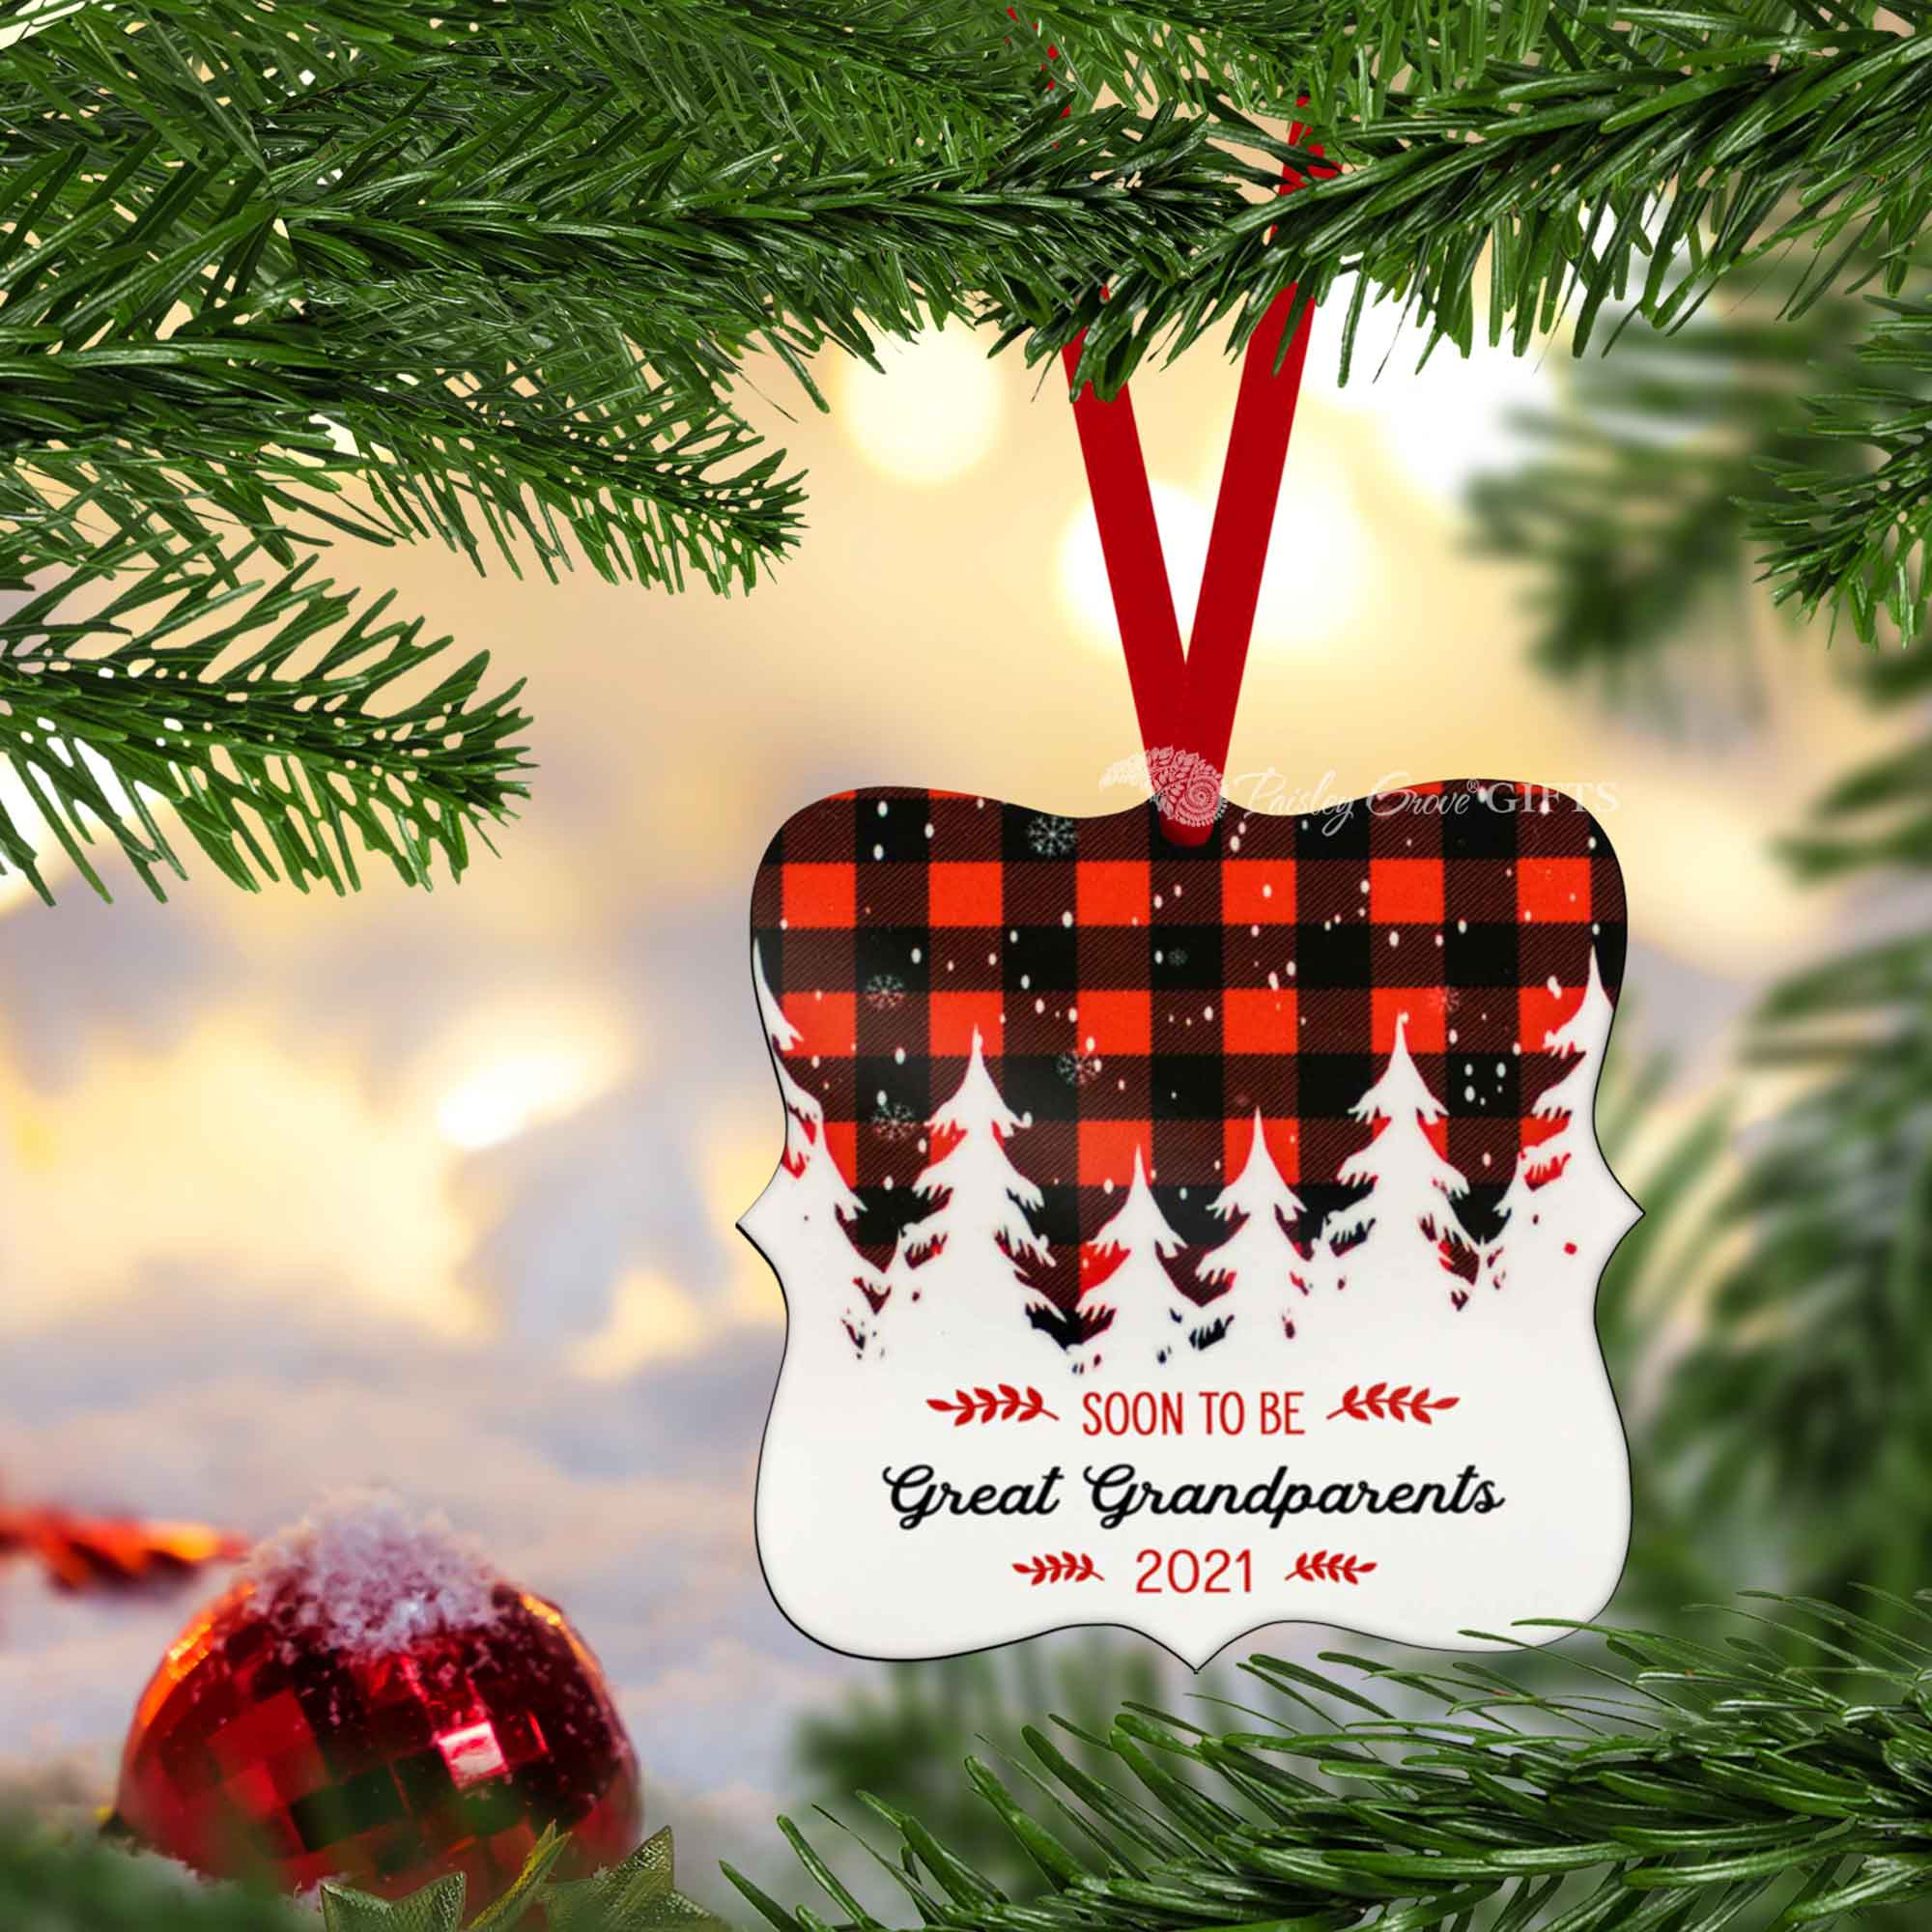 CopyrightPaisleyGroveGIFTS S502e6 Buffalo Plaid Christmas ornament for soon to be great grandparents